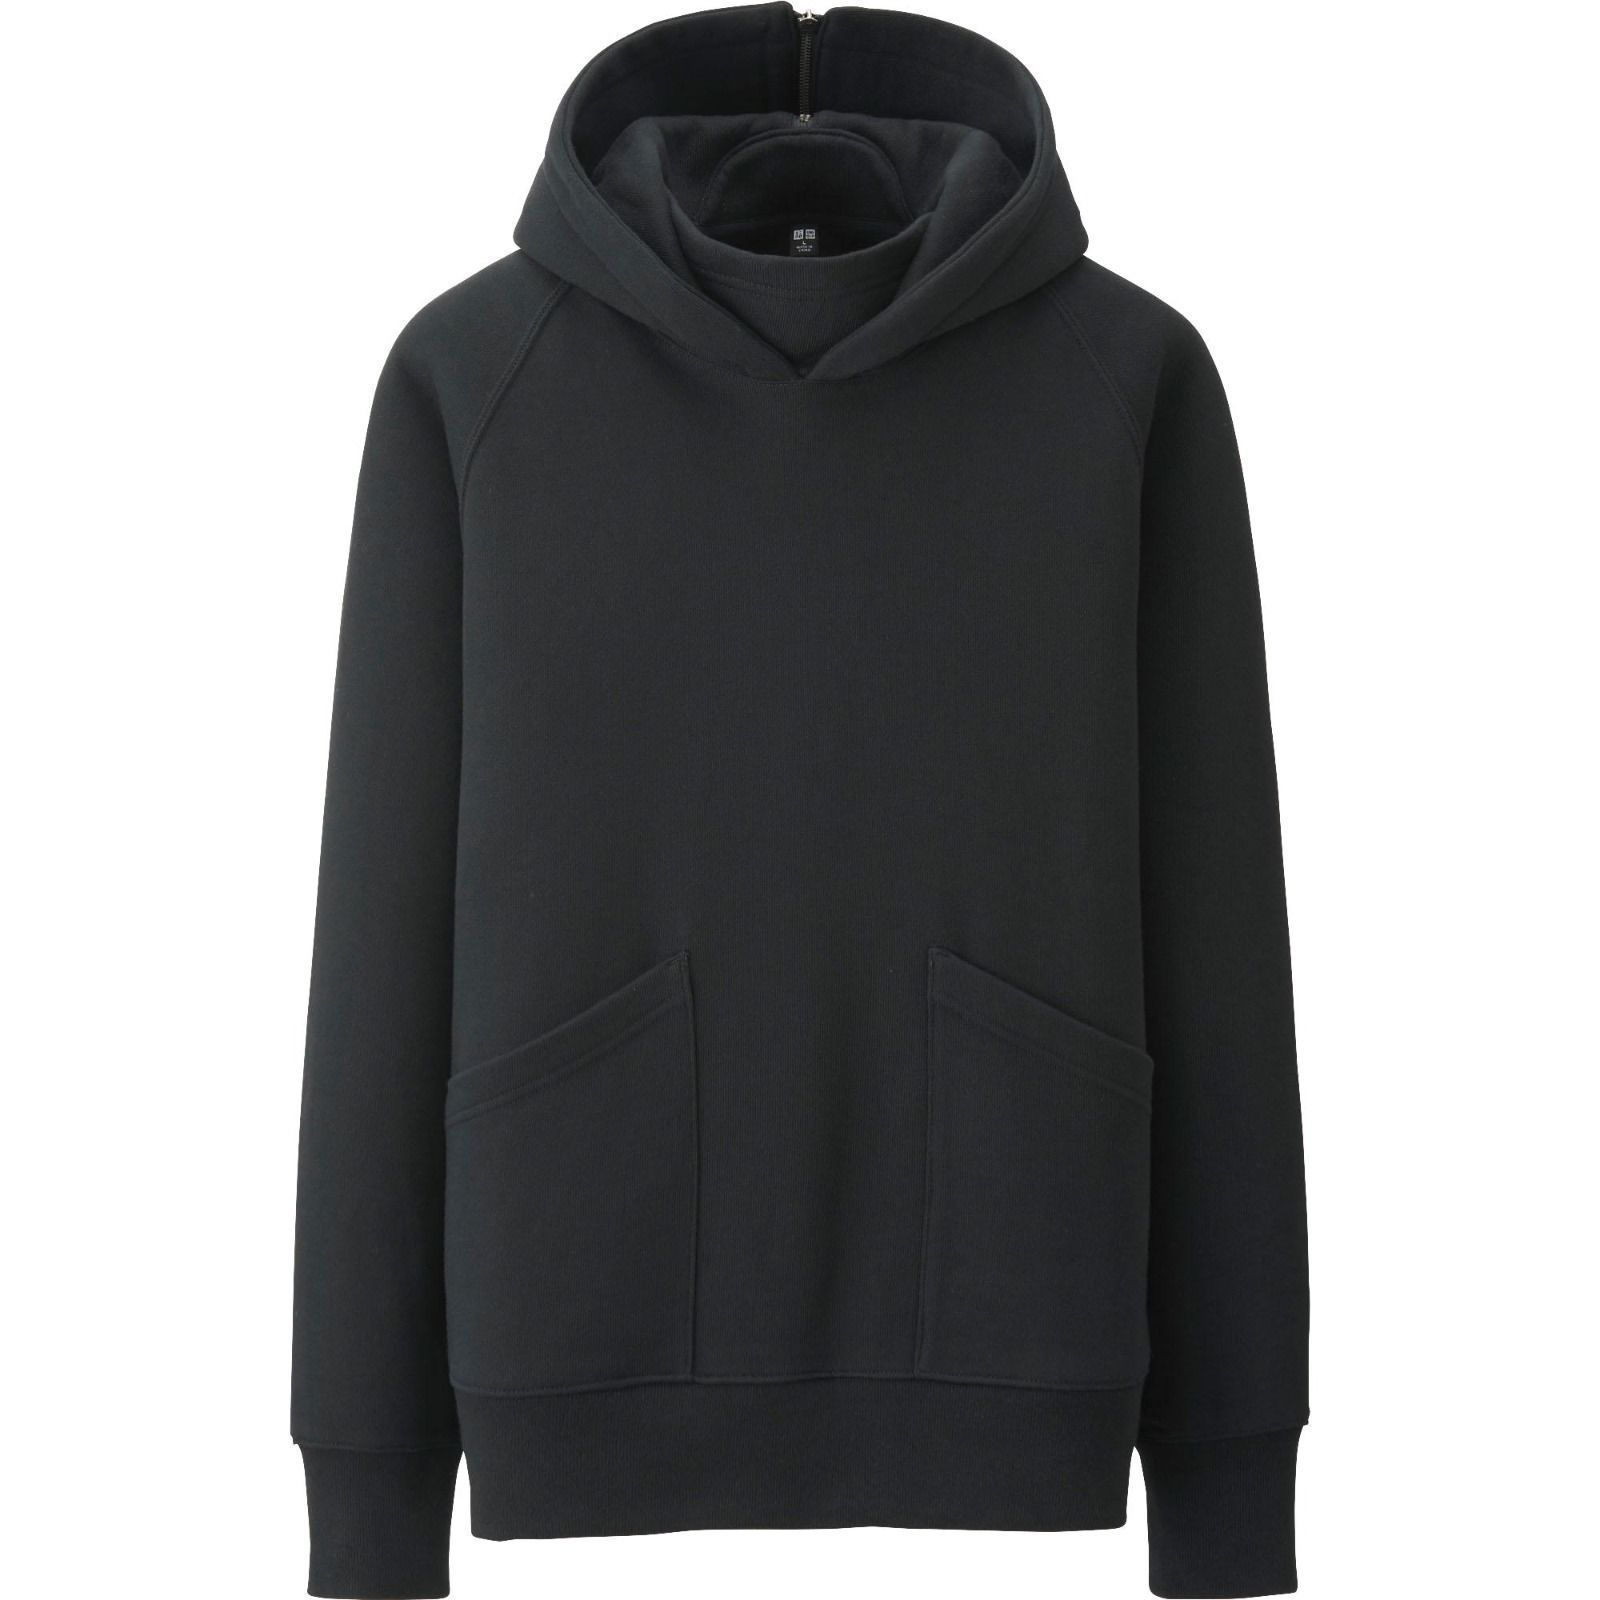 Top 10 Hoodies | Uniqlo men and Pullover